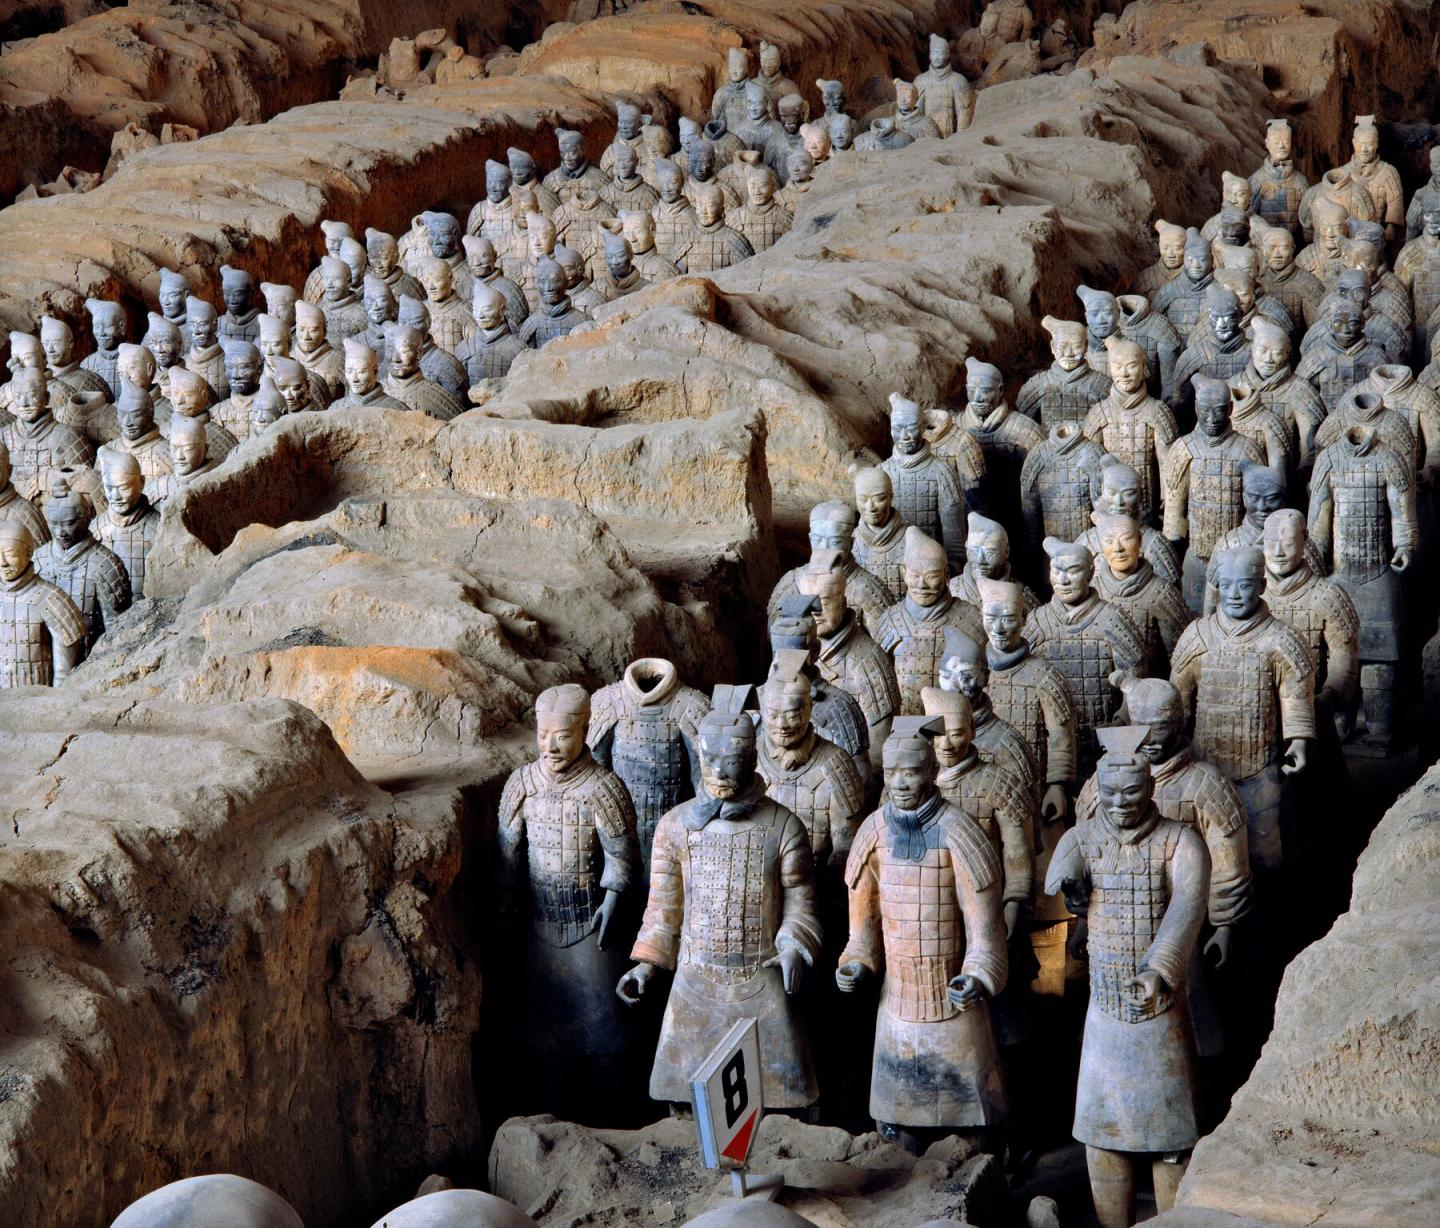 F0 Pit 1 of the Terracotta Army